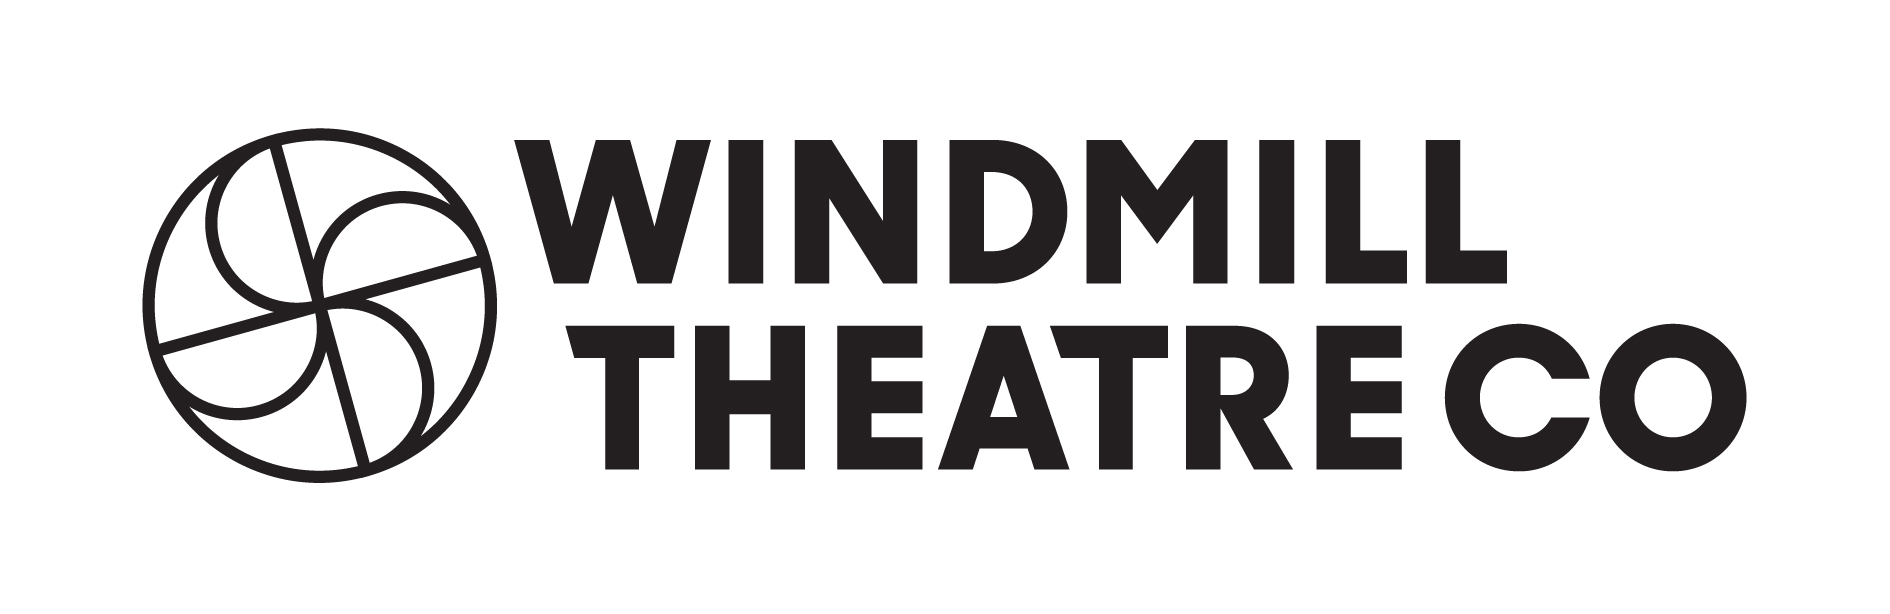 windmill-theatre-company